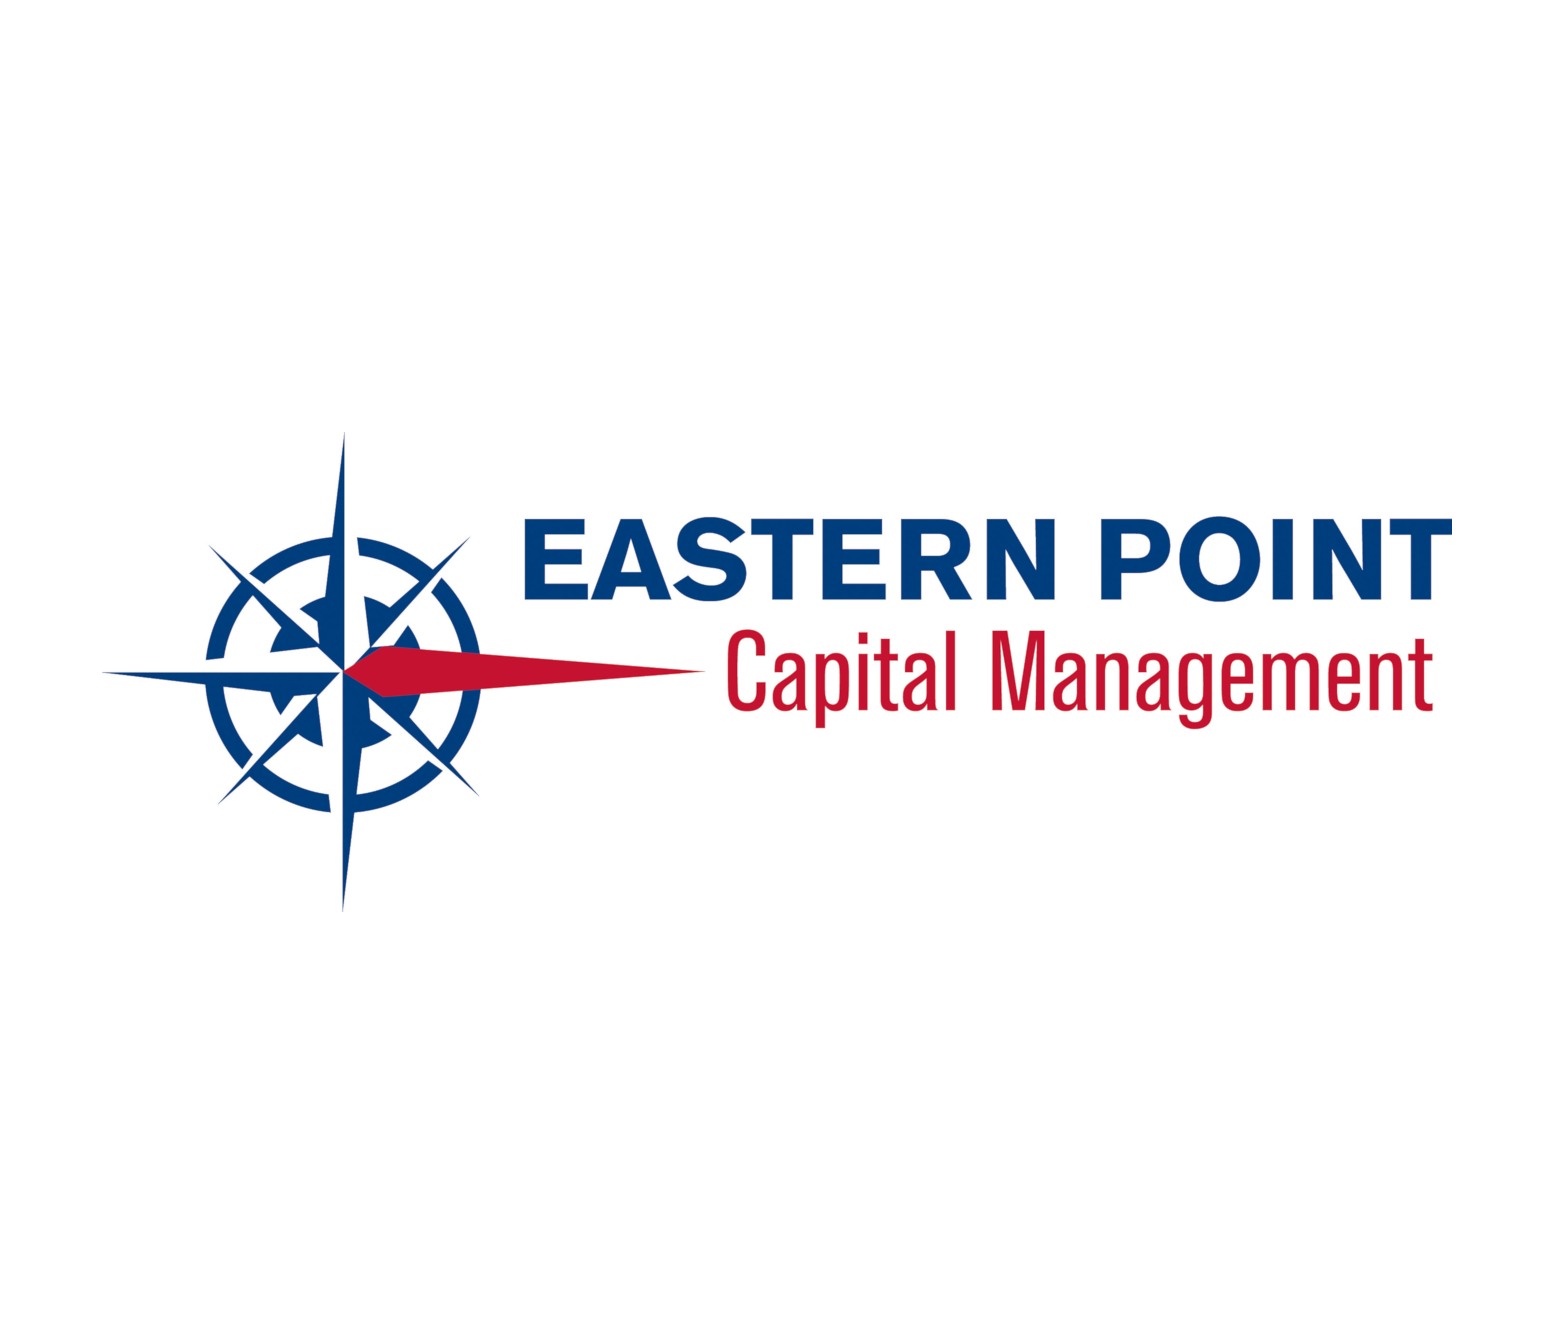 Eastern Point Capital Management is a boutique asset management firm specializing in emerging and frontier markets.